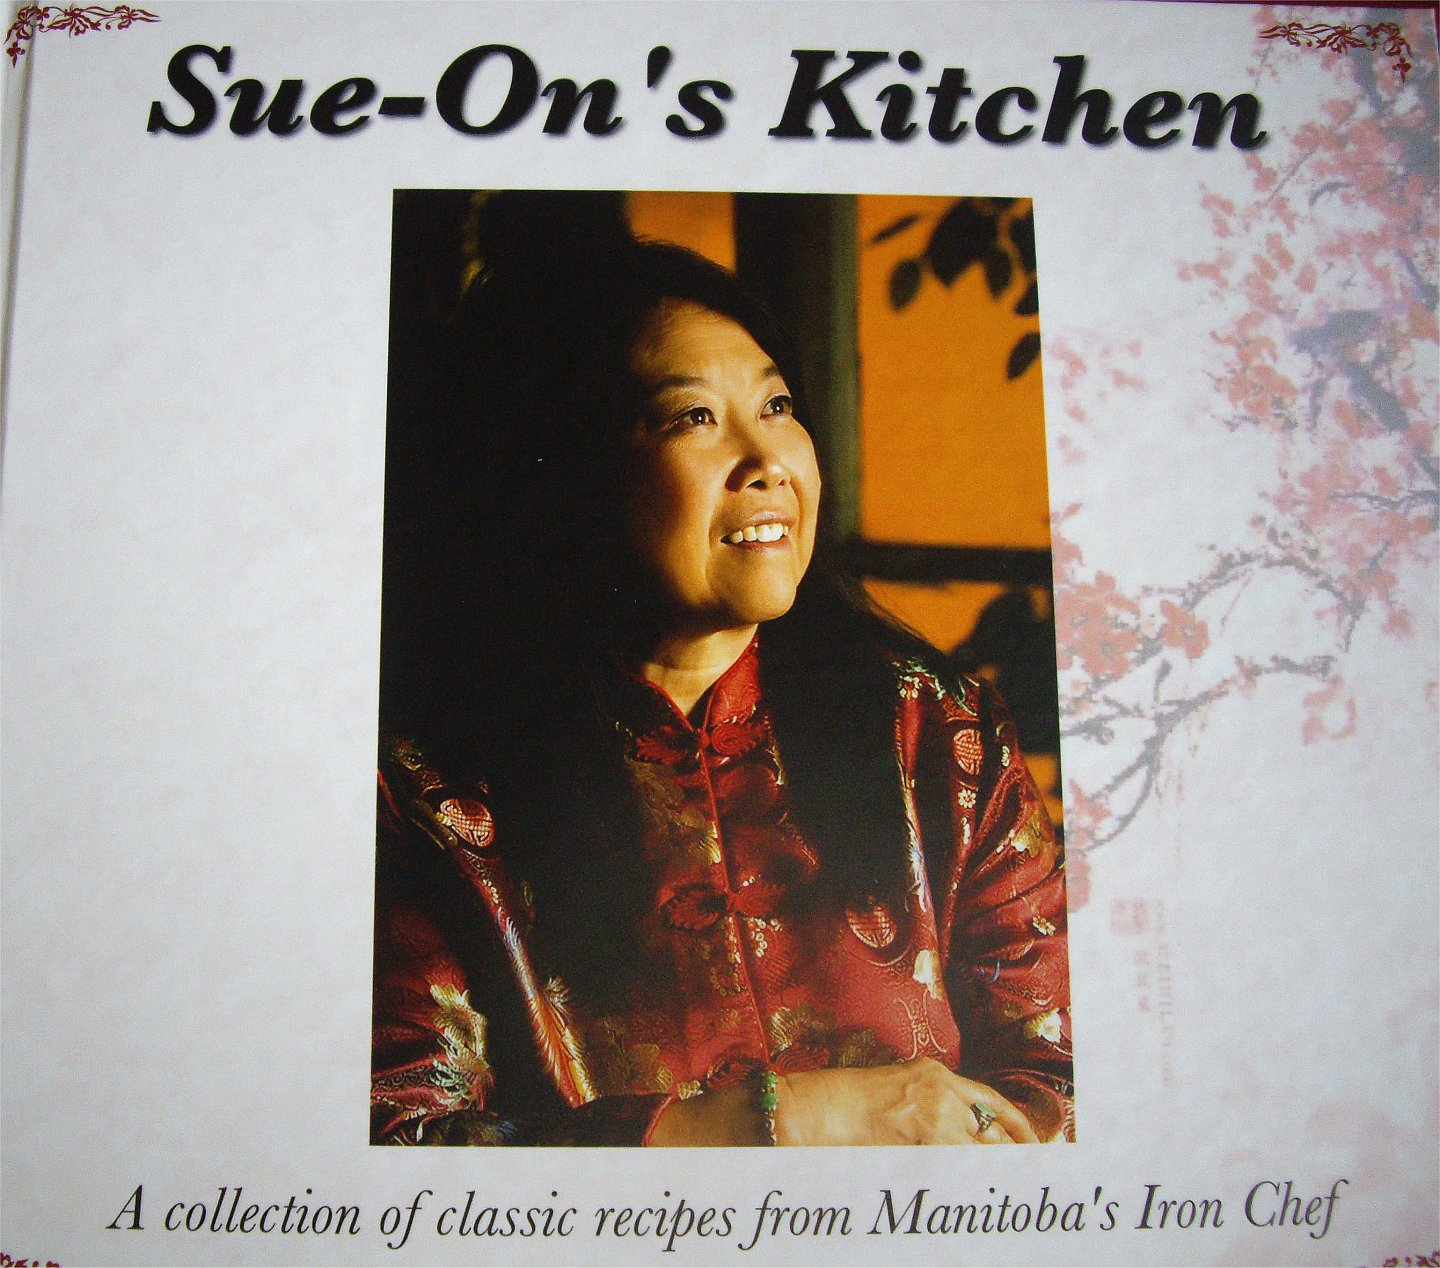 Welcome to Sue-On's Kitchen